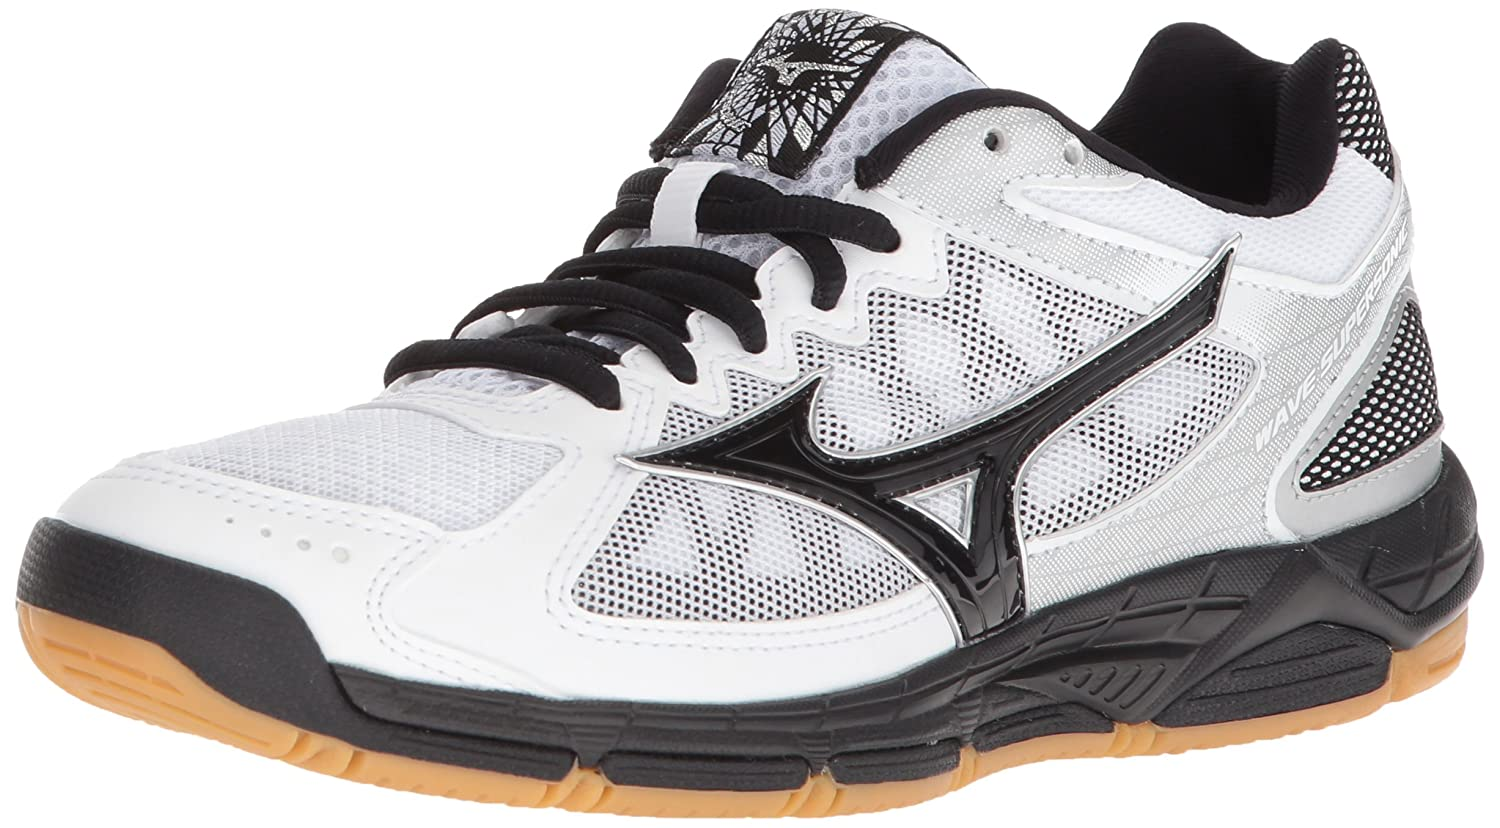 Mizuno Women's Wave Supersonic Volleyball Shoe B07825Q6HF Women's 7 B US|White/Black